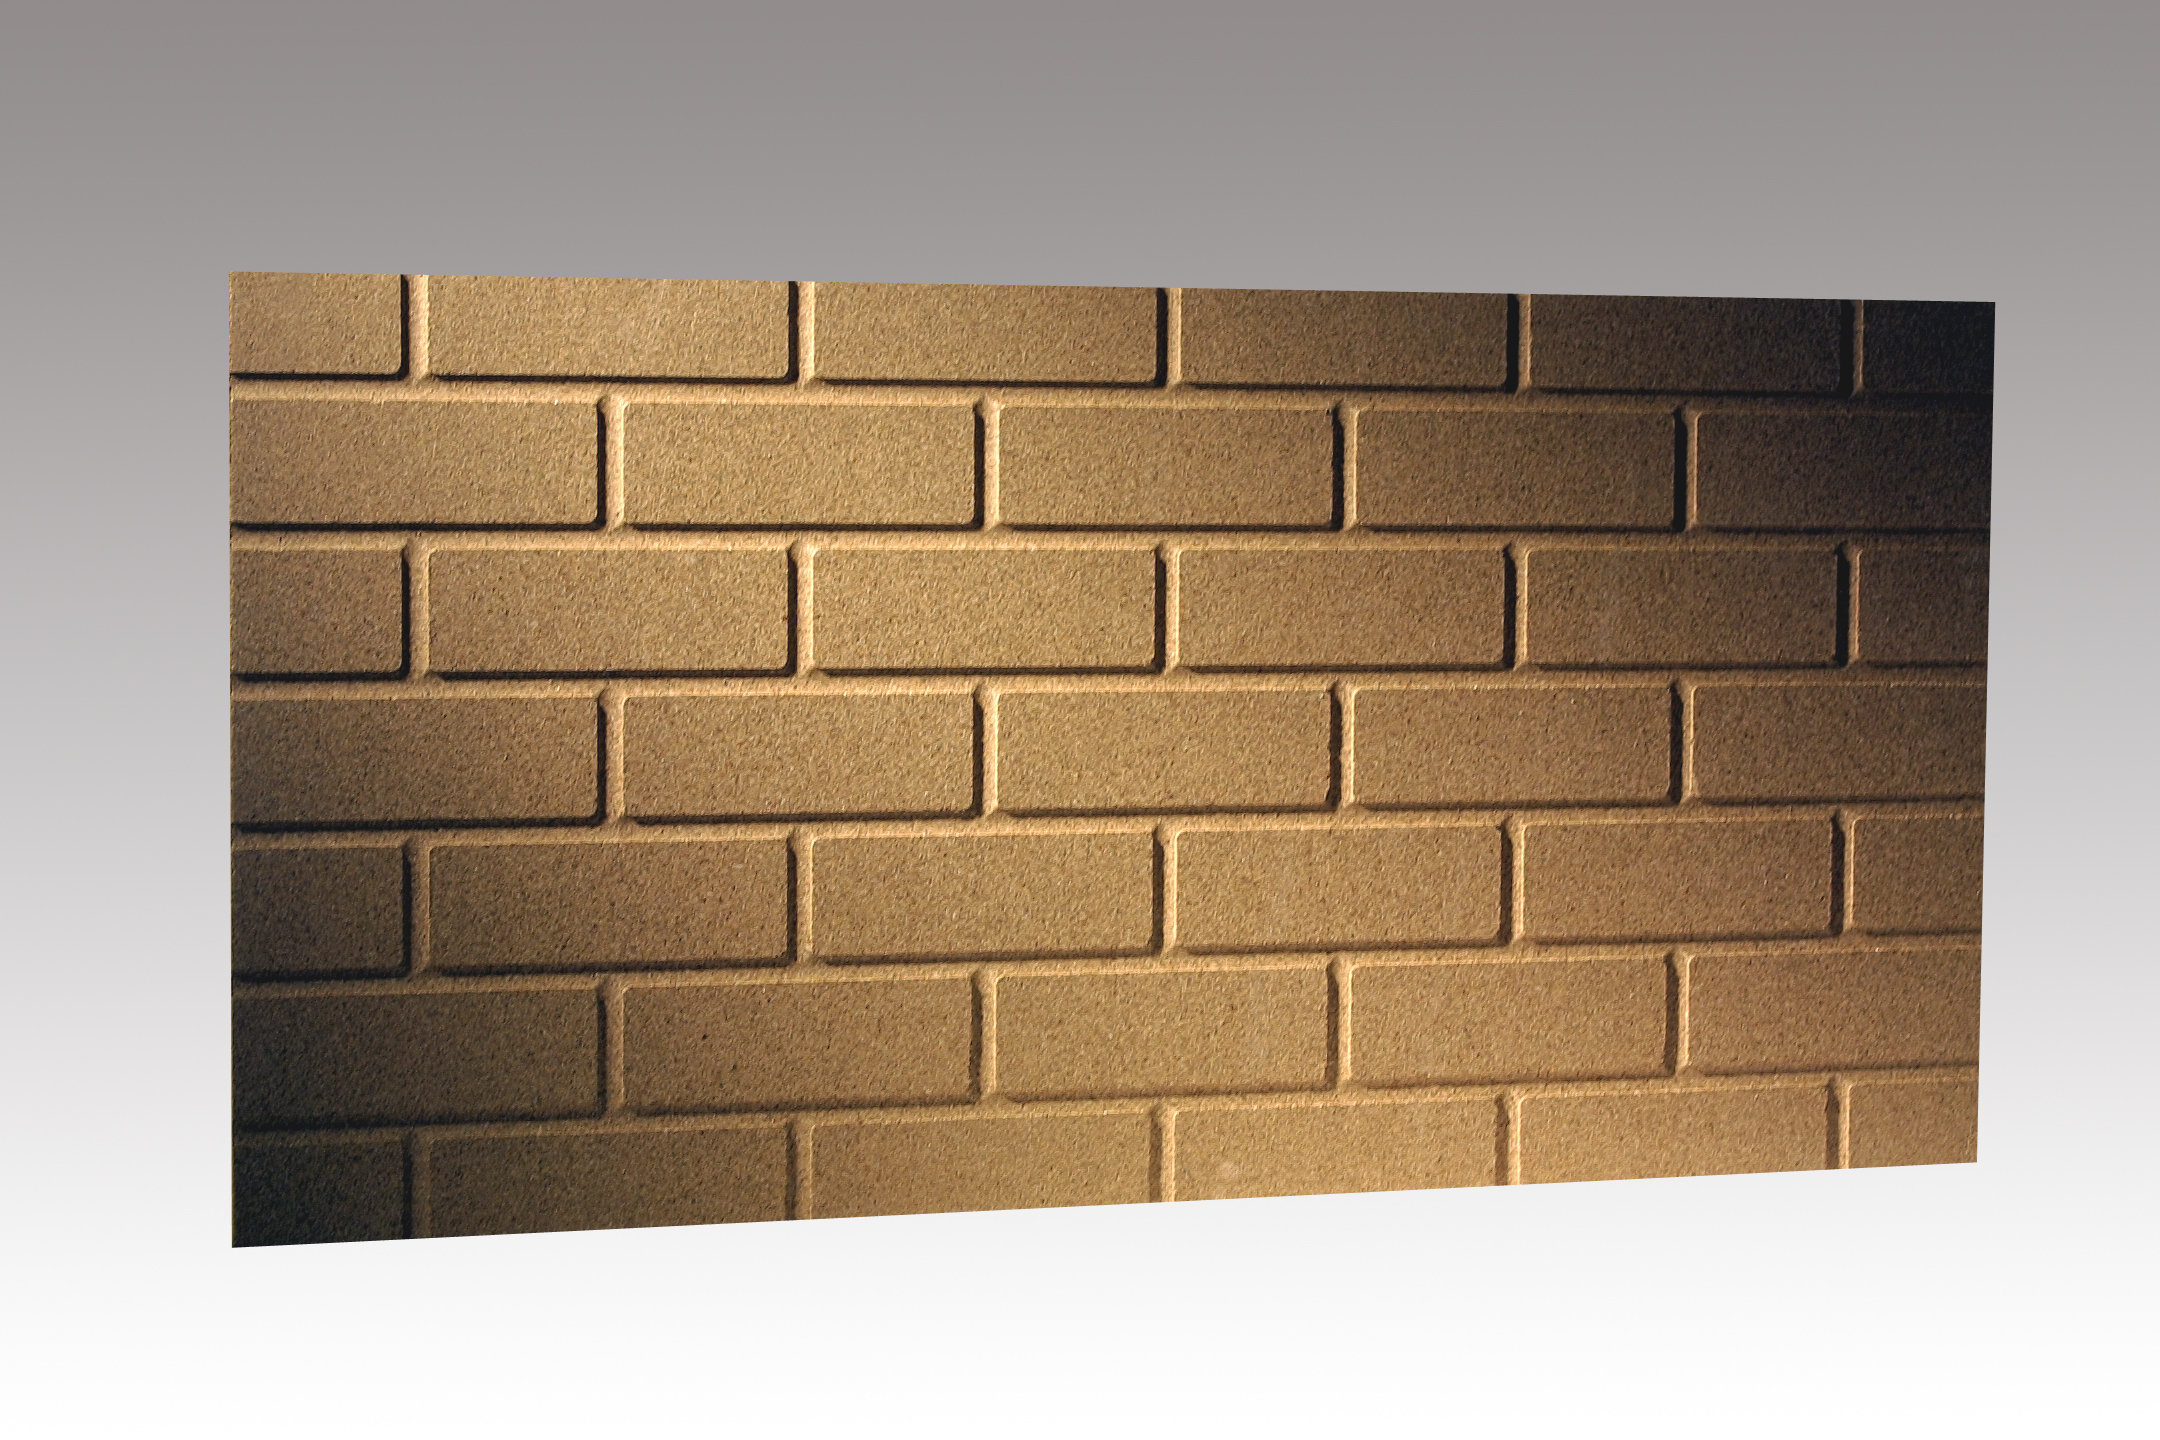 Brickwall (997mm x 610mm)